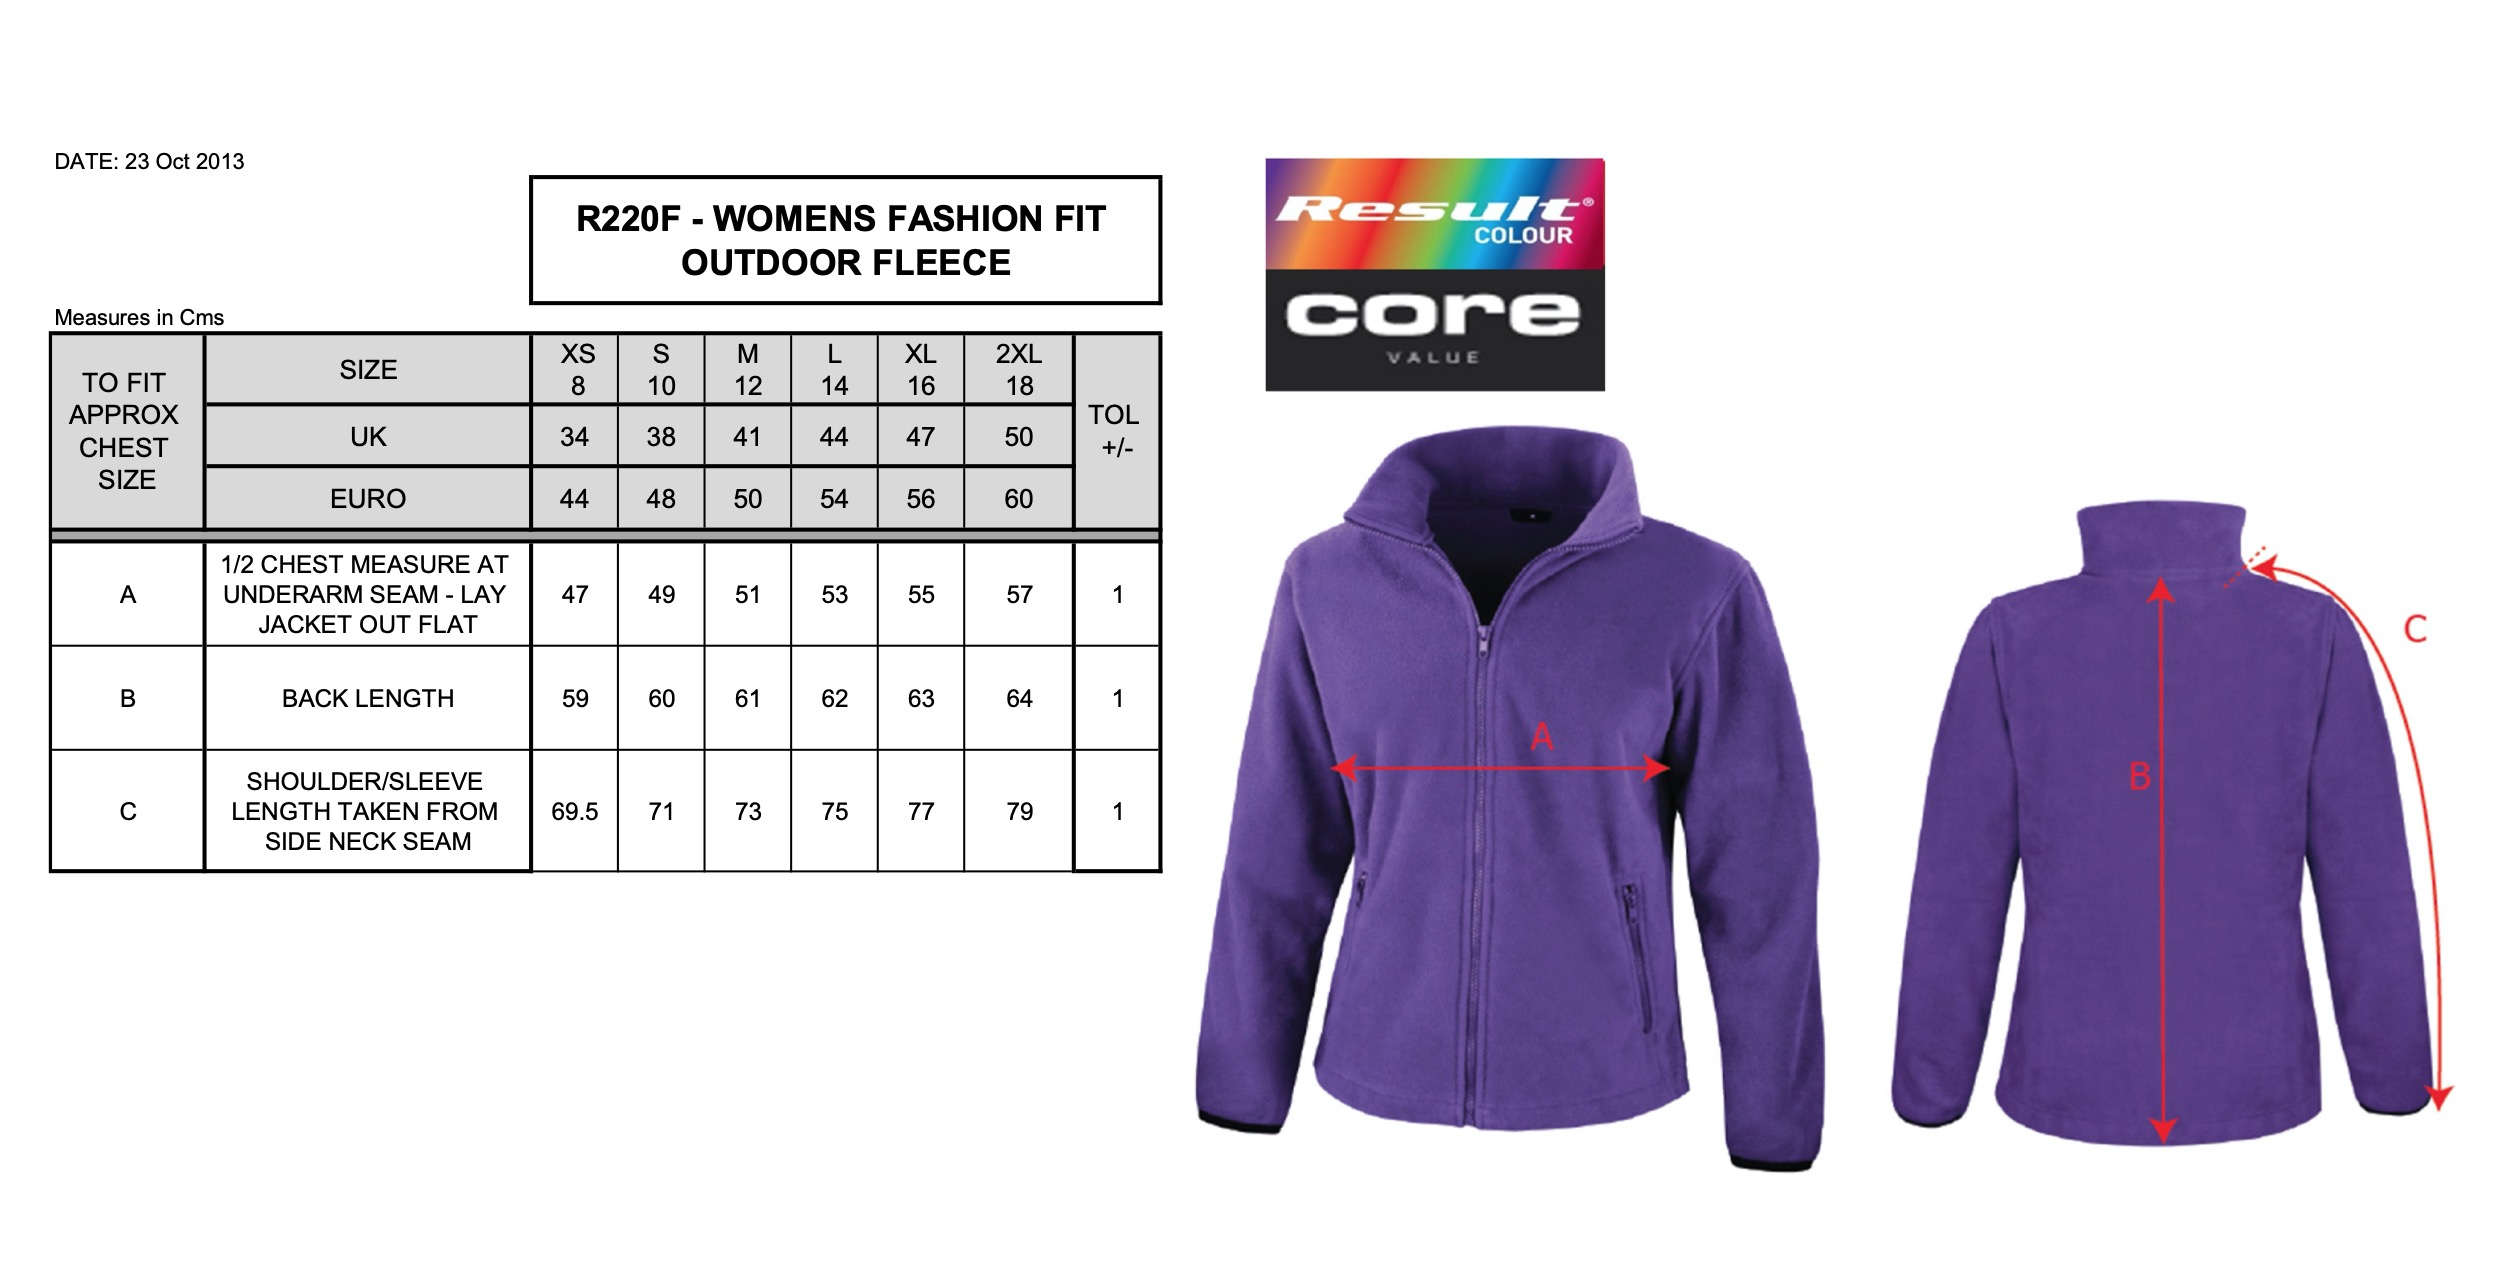 Result: Womens Fashion Fit Outdoor Fleece R220F